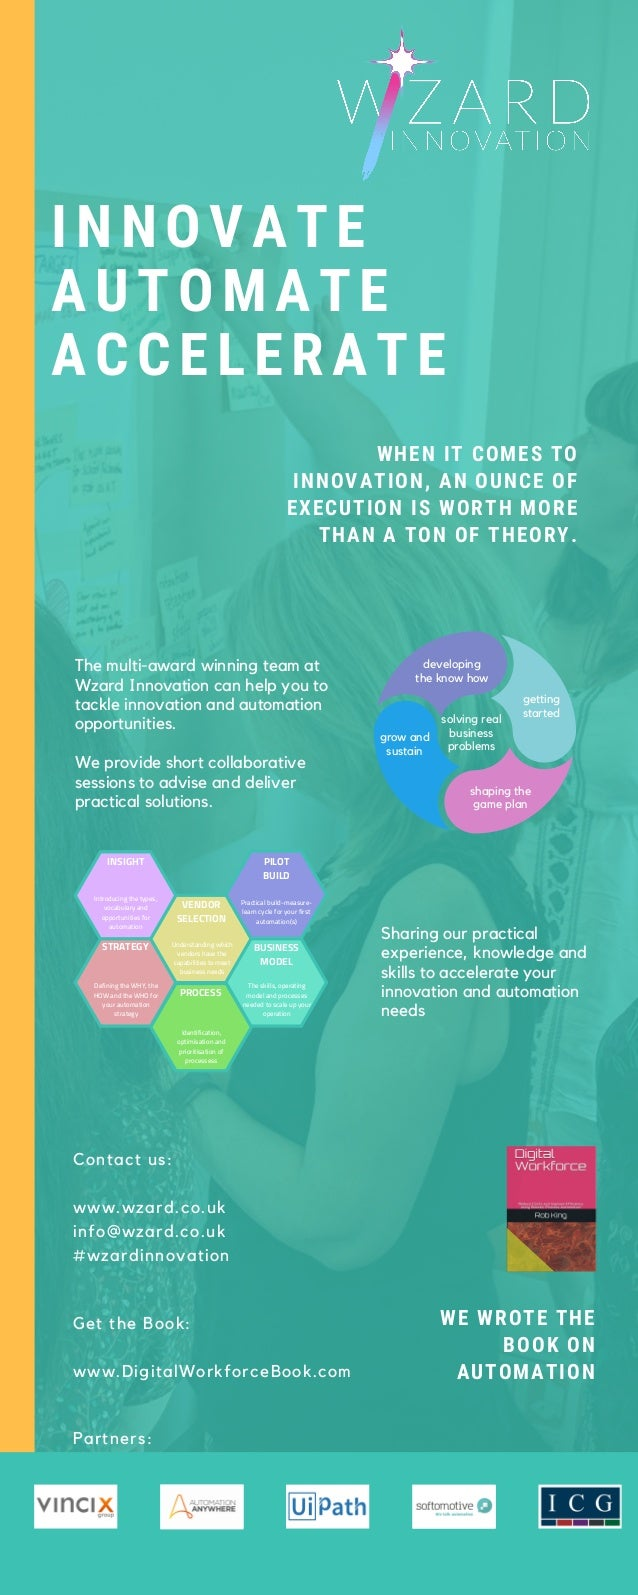 INNOVATE AUTOMATE ACCELERATE Partners: solving real business problems developing the know how getting started shaping the ...